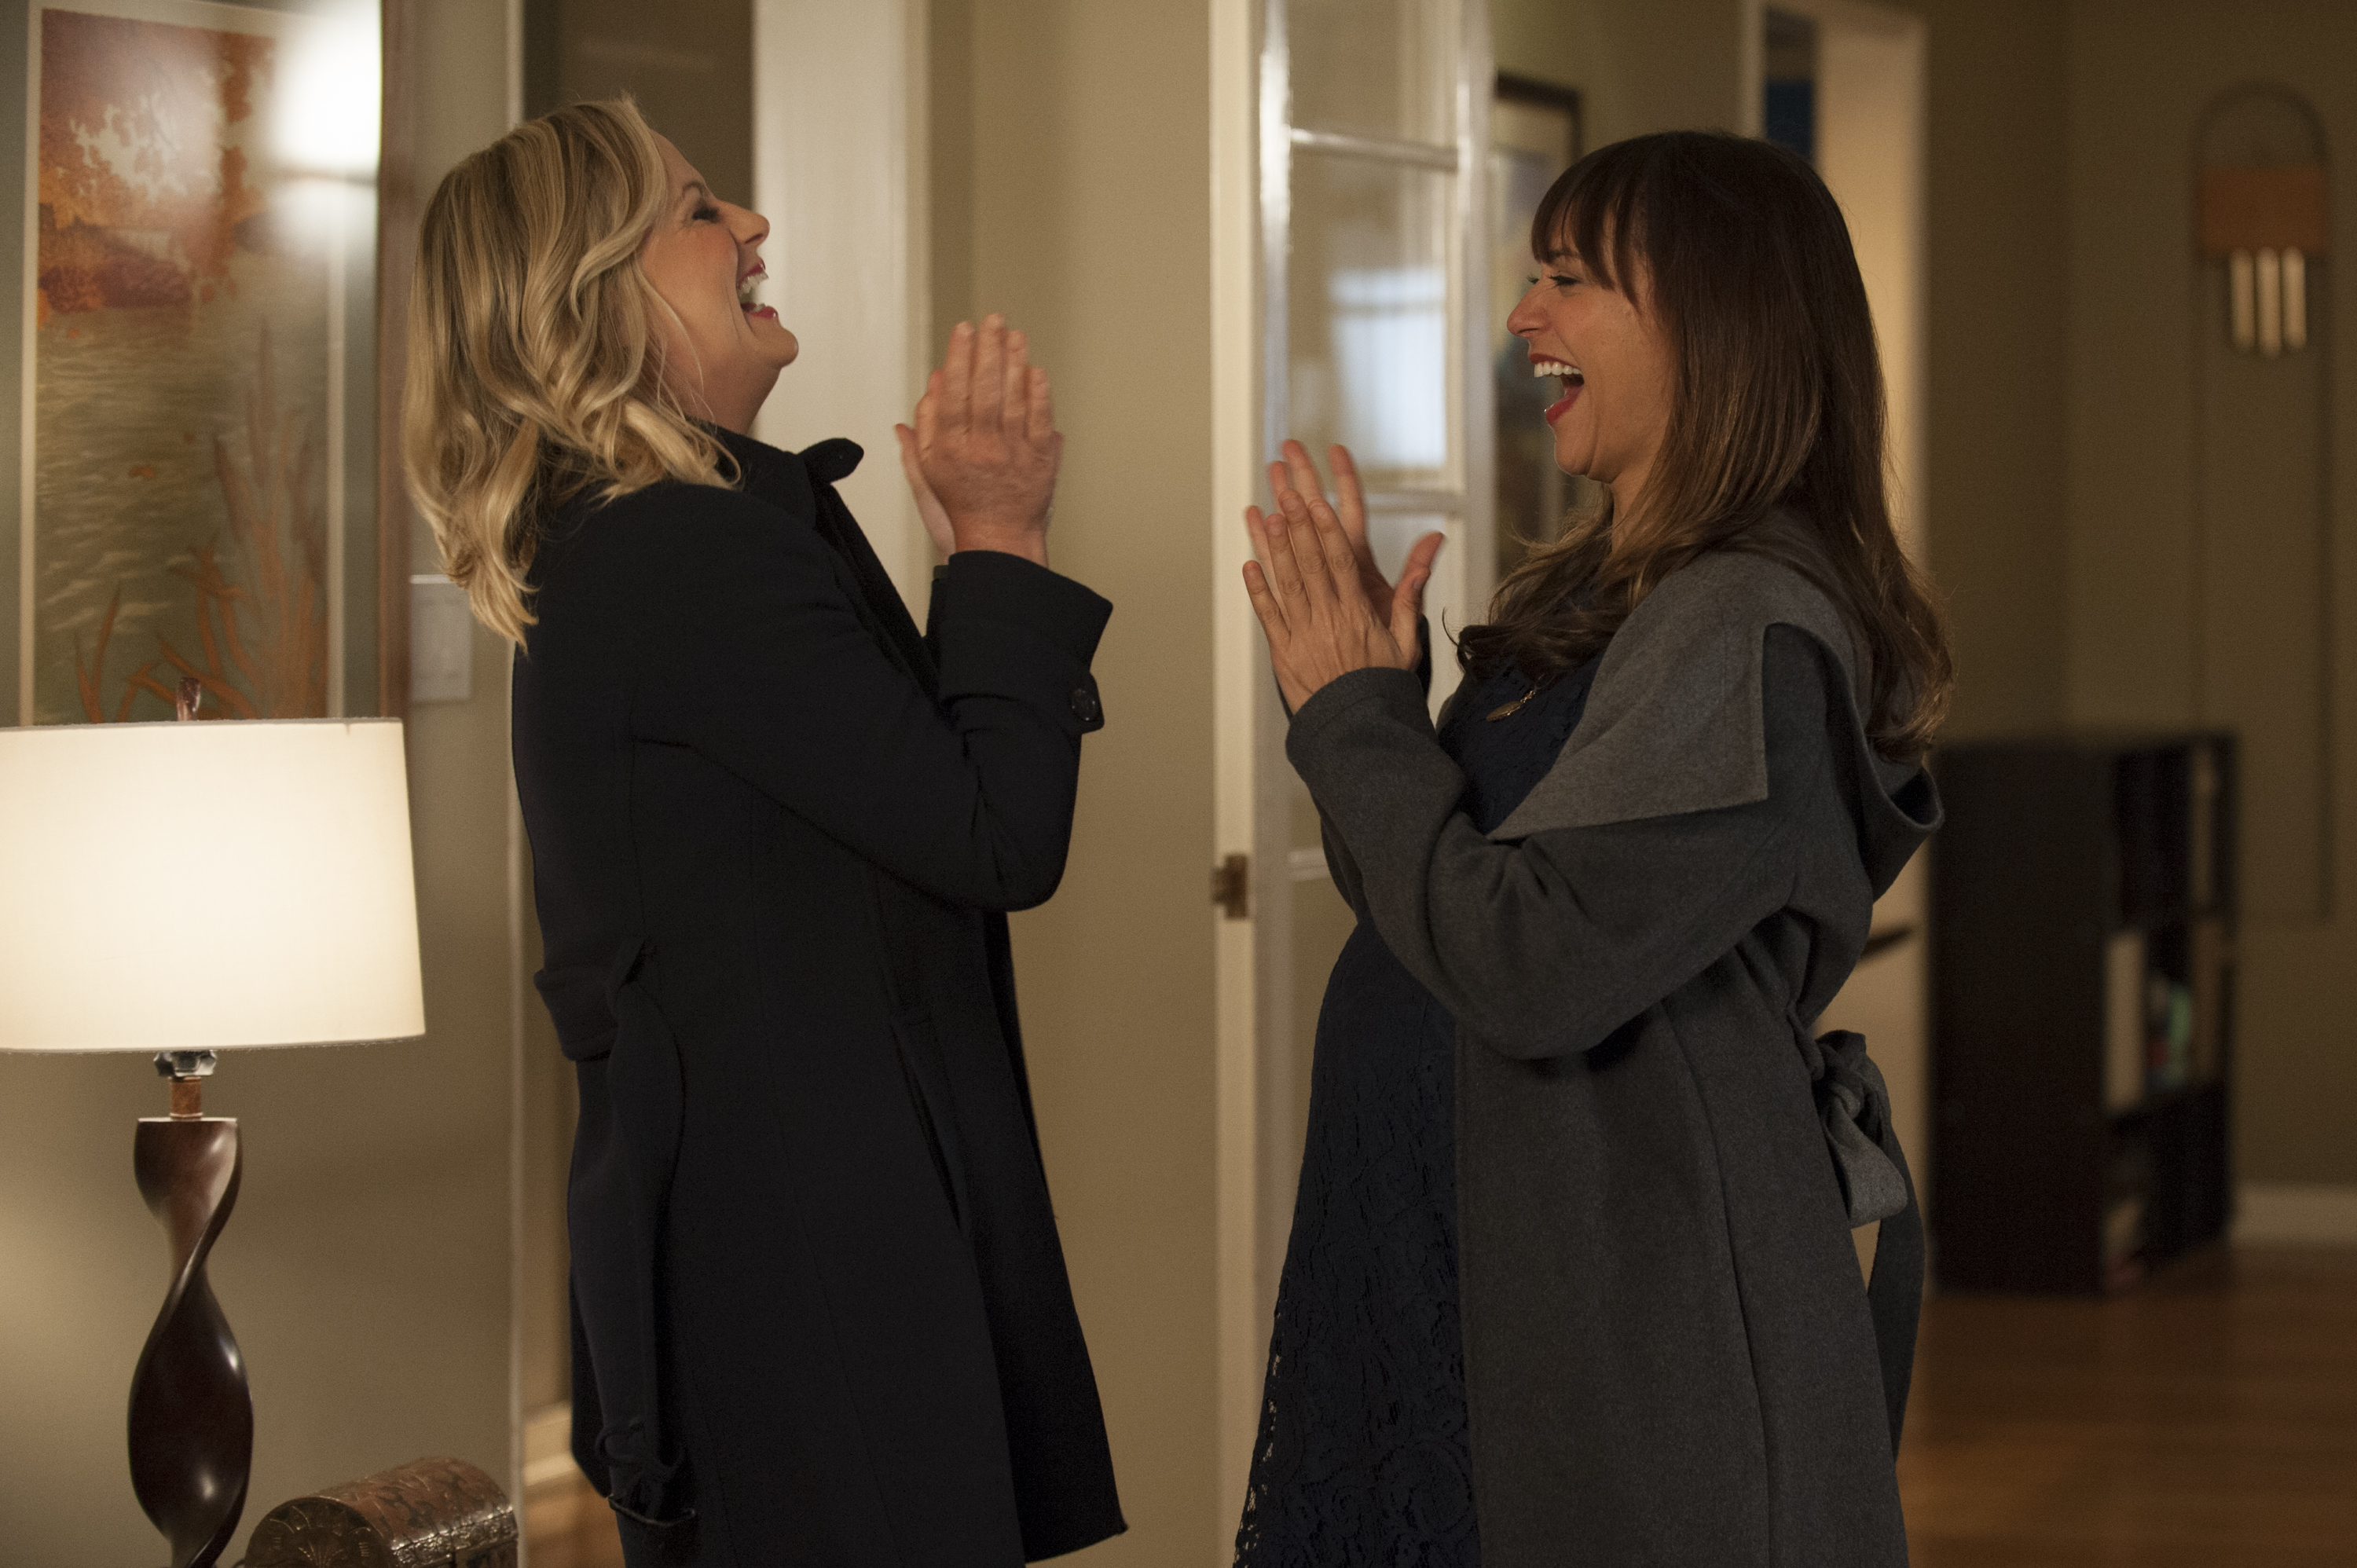 Parks and Recreation - Leslie Knope and Ann Perkins laugh and clap hands